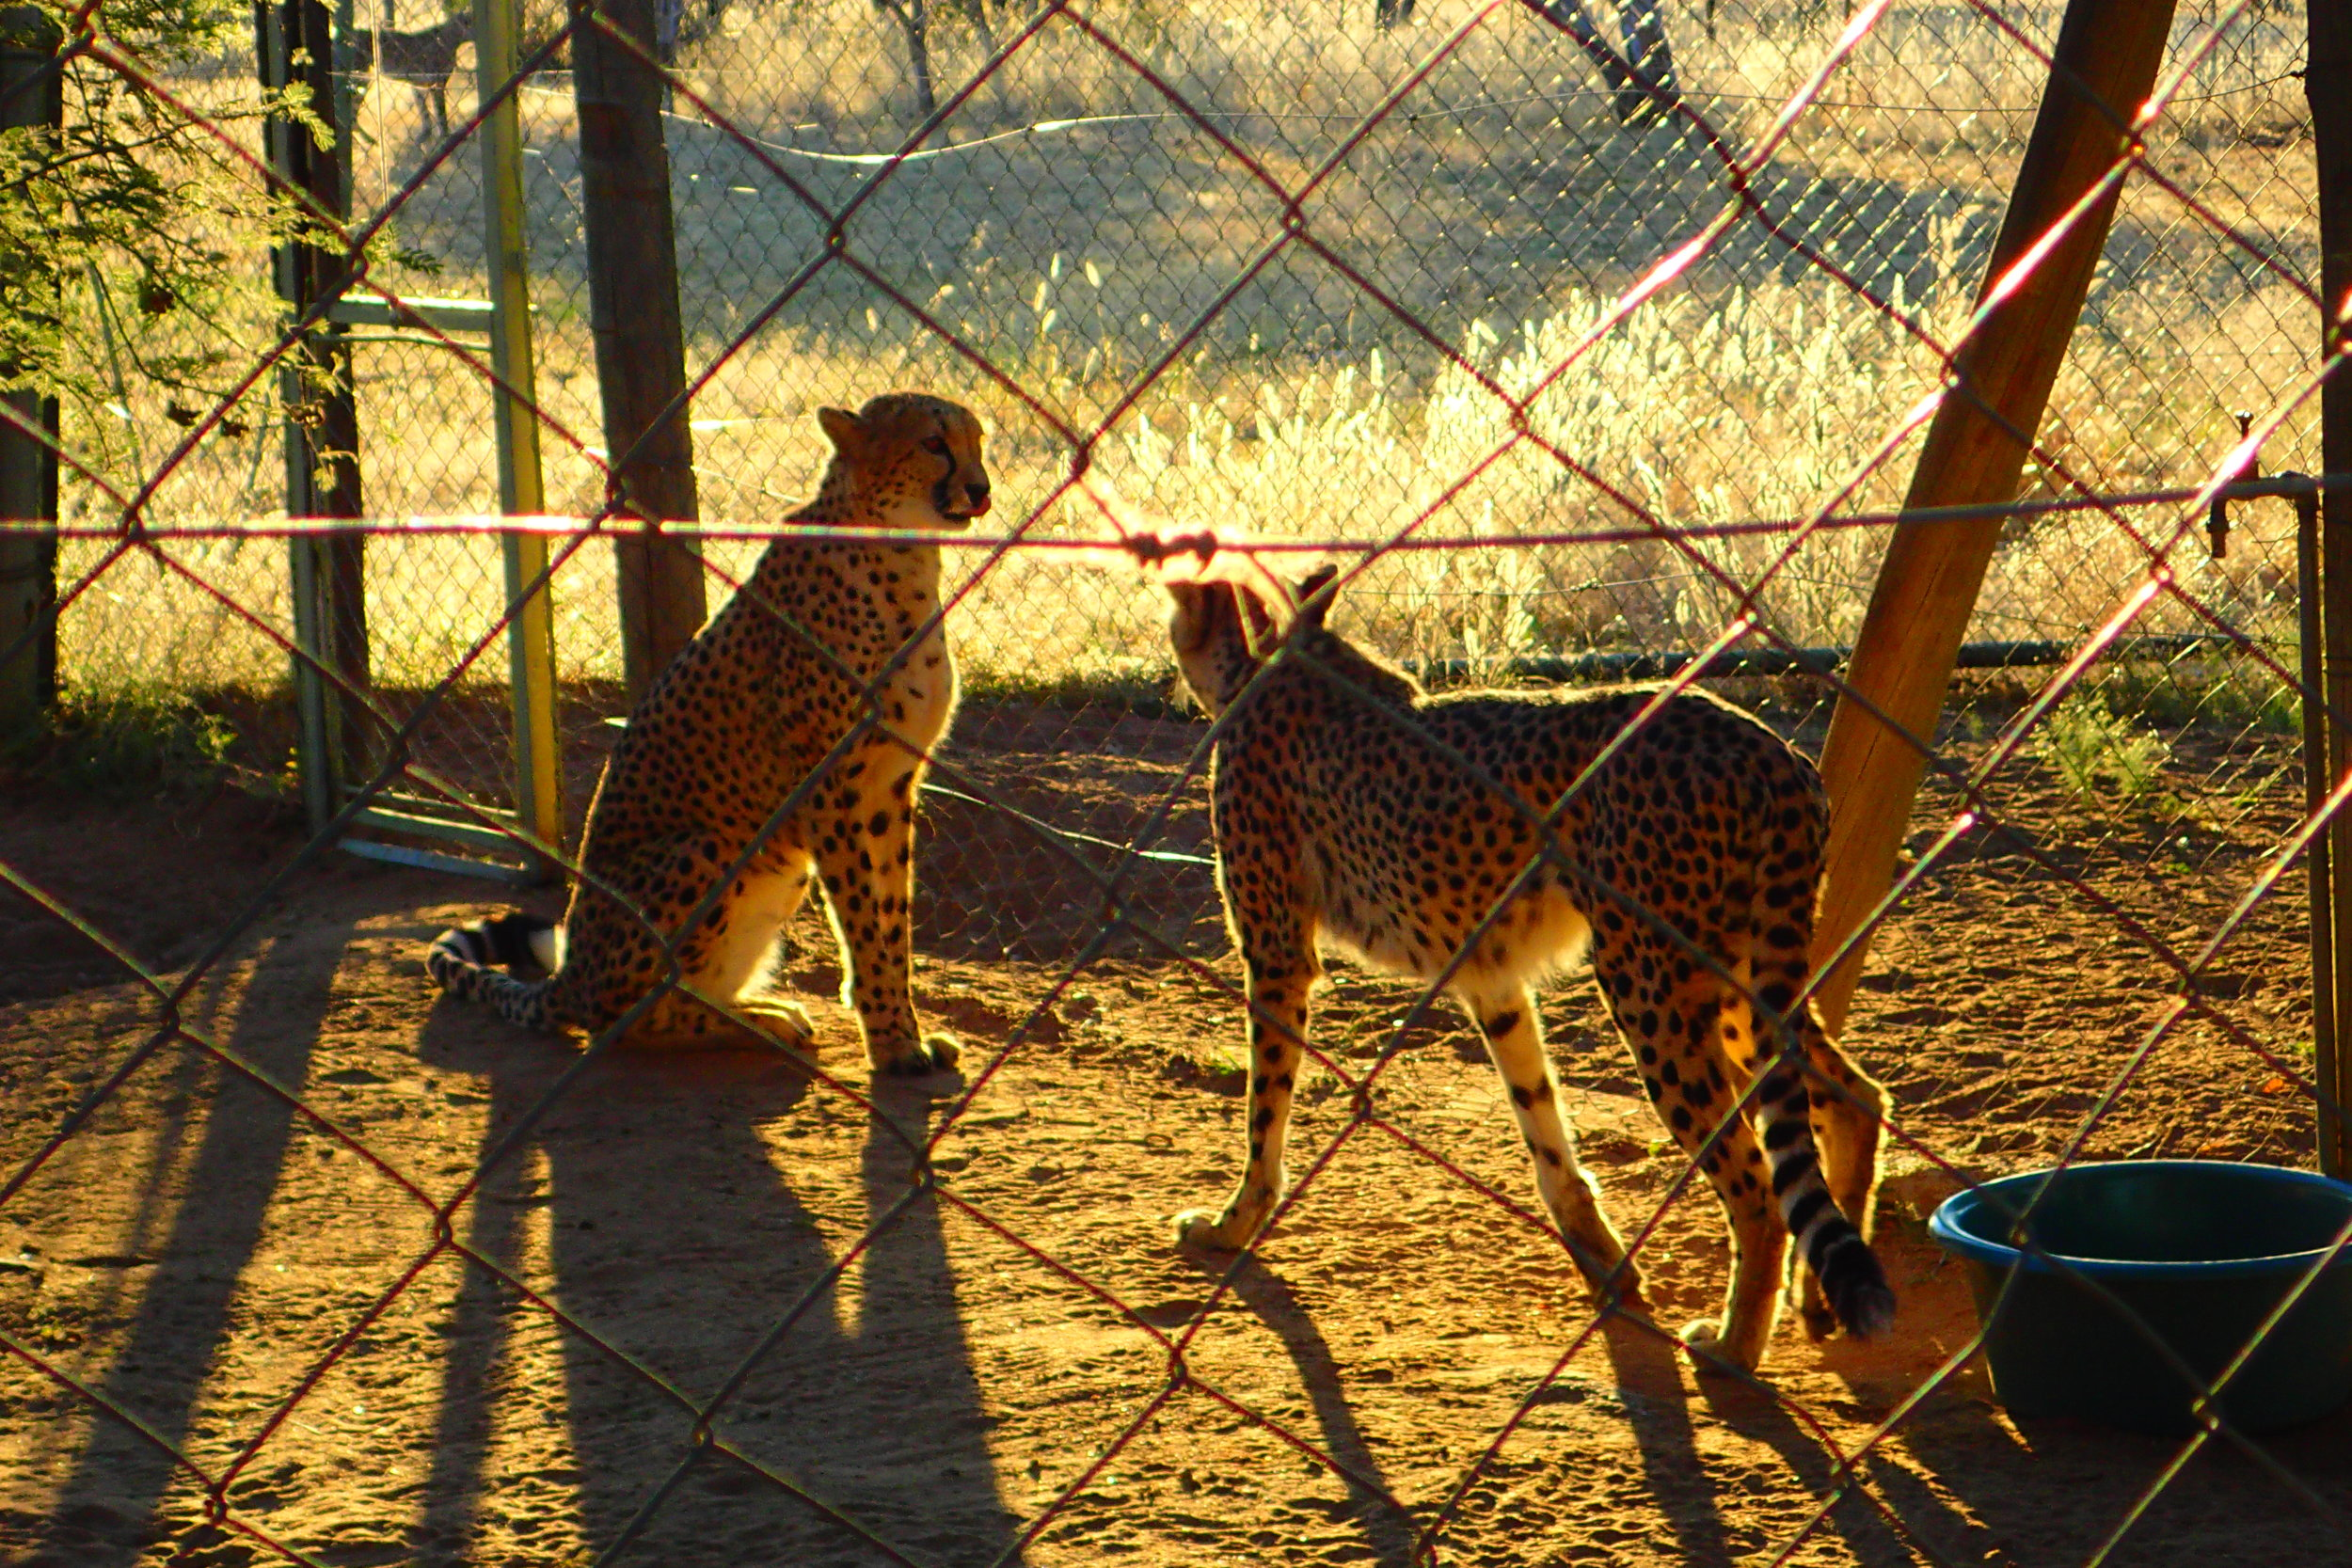 This is a photo I took of wild cheetahs that were rehabilitated but are unable to be released at the Cheetah Conservation Fund in Nambia. They were in this holding pen before being released for exercise into a much larger area.